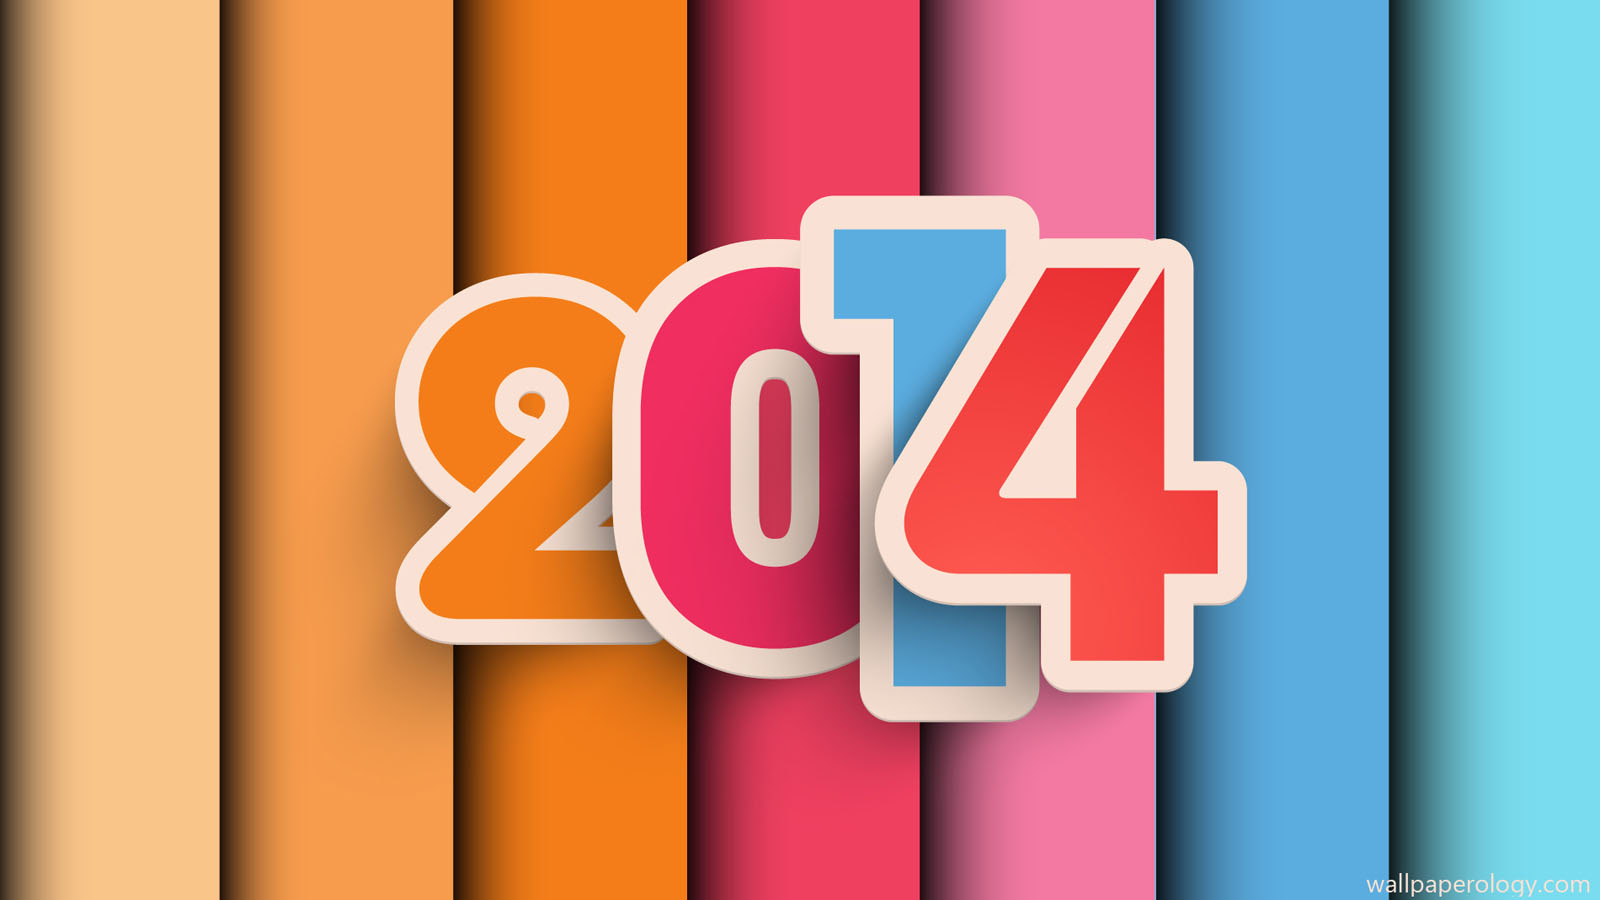 2014 new year wallpaper